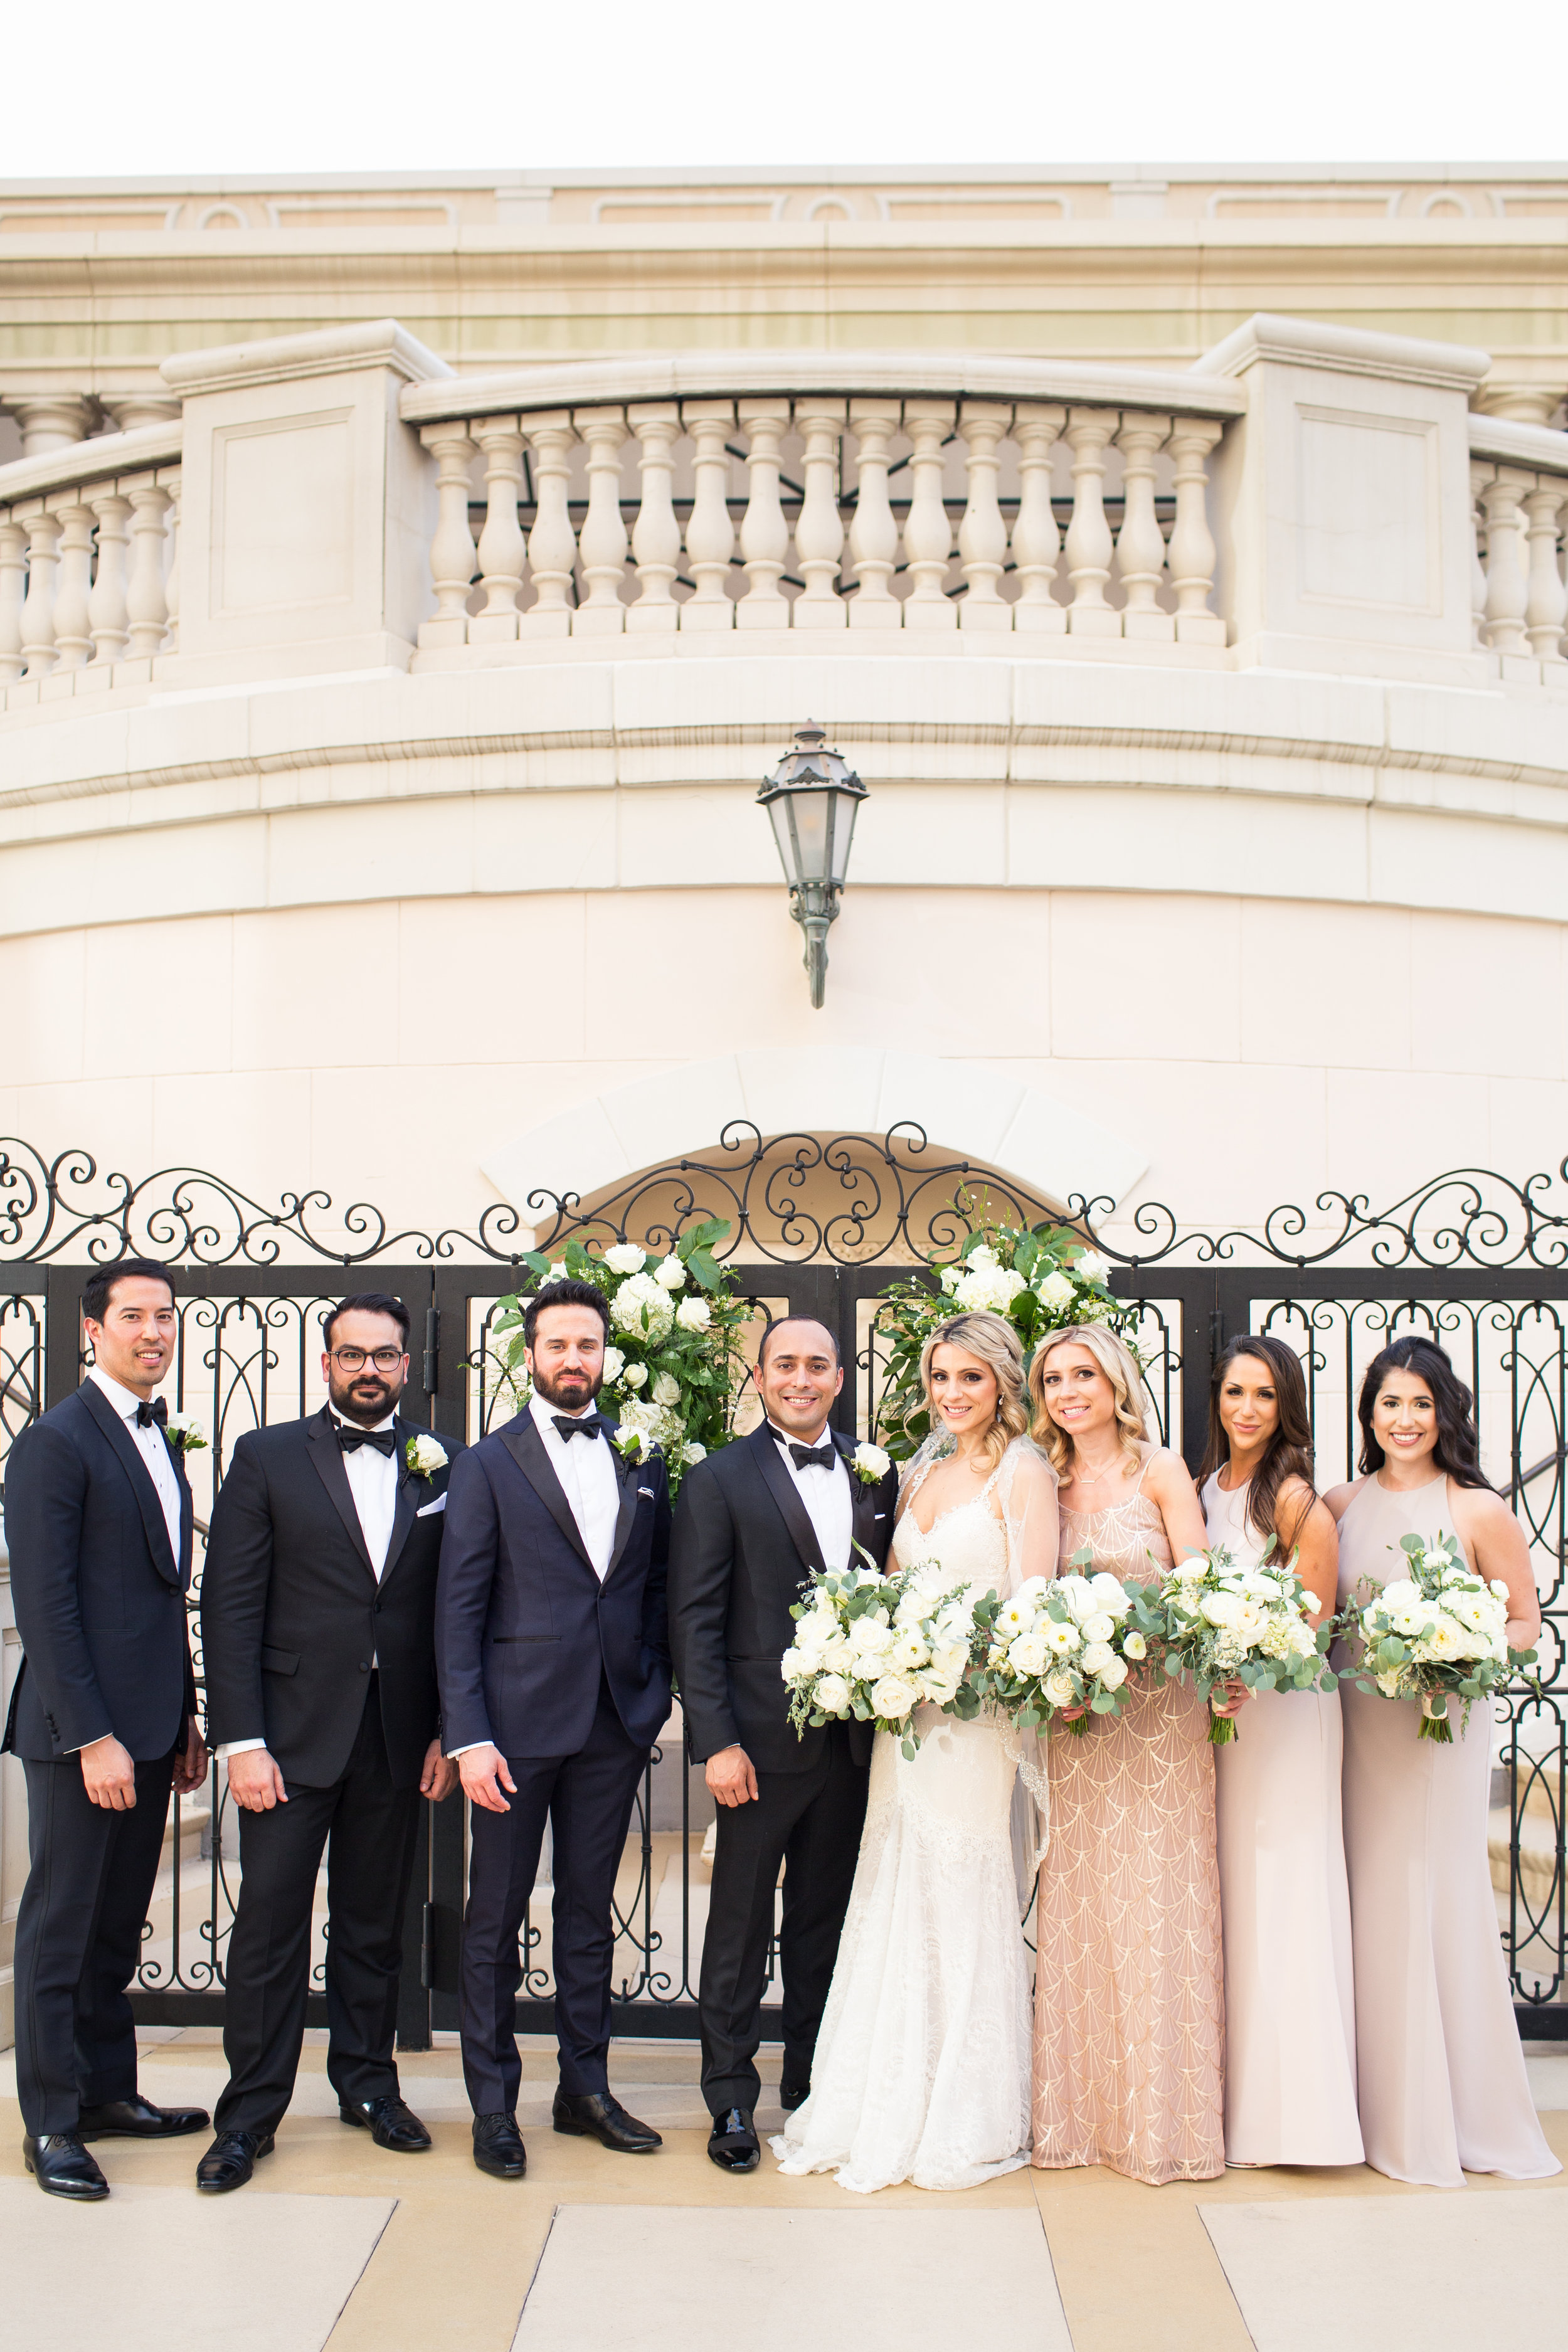 Bridal party in blush and black.Wedding Planner:  Andrea Eppolito Events   | Photography  D2 Tuscan Wedding Photography  | Videography  M Place Productions  | Venue & Catering:  Bellagio  | Floral & Decor:  Destinations by Design  | Lighting:  LED Unplugged   | Music: Classical Entertainment &  DJ Mike Fox  | Hair & Make Up:  Amelia C & Co